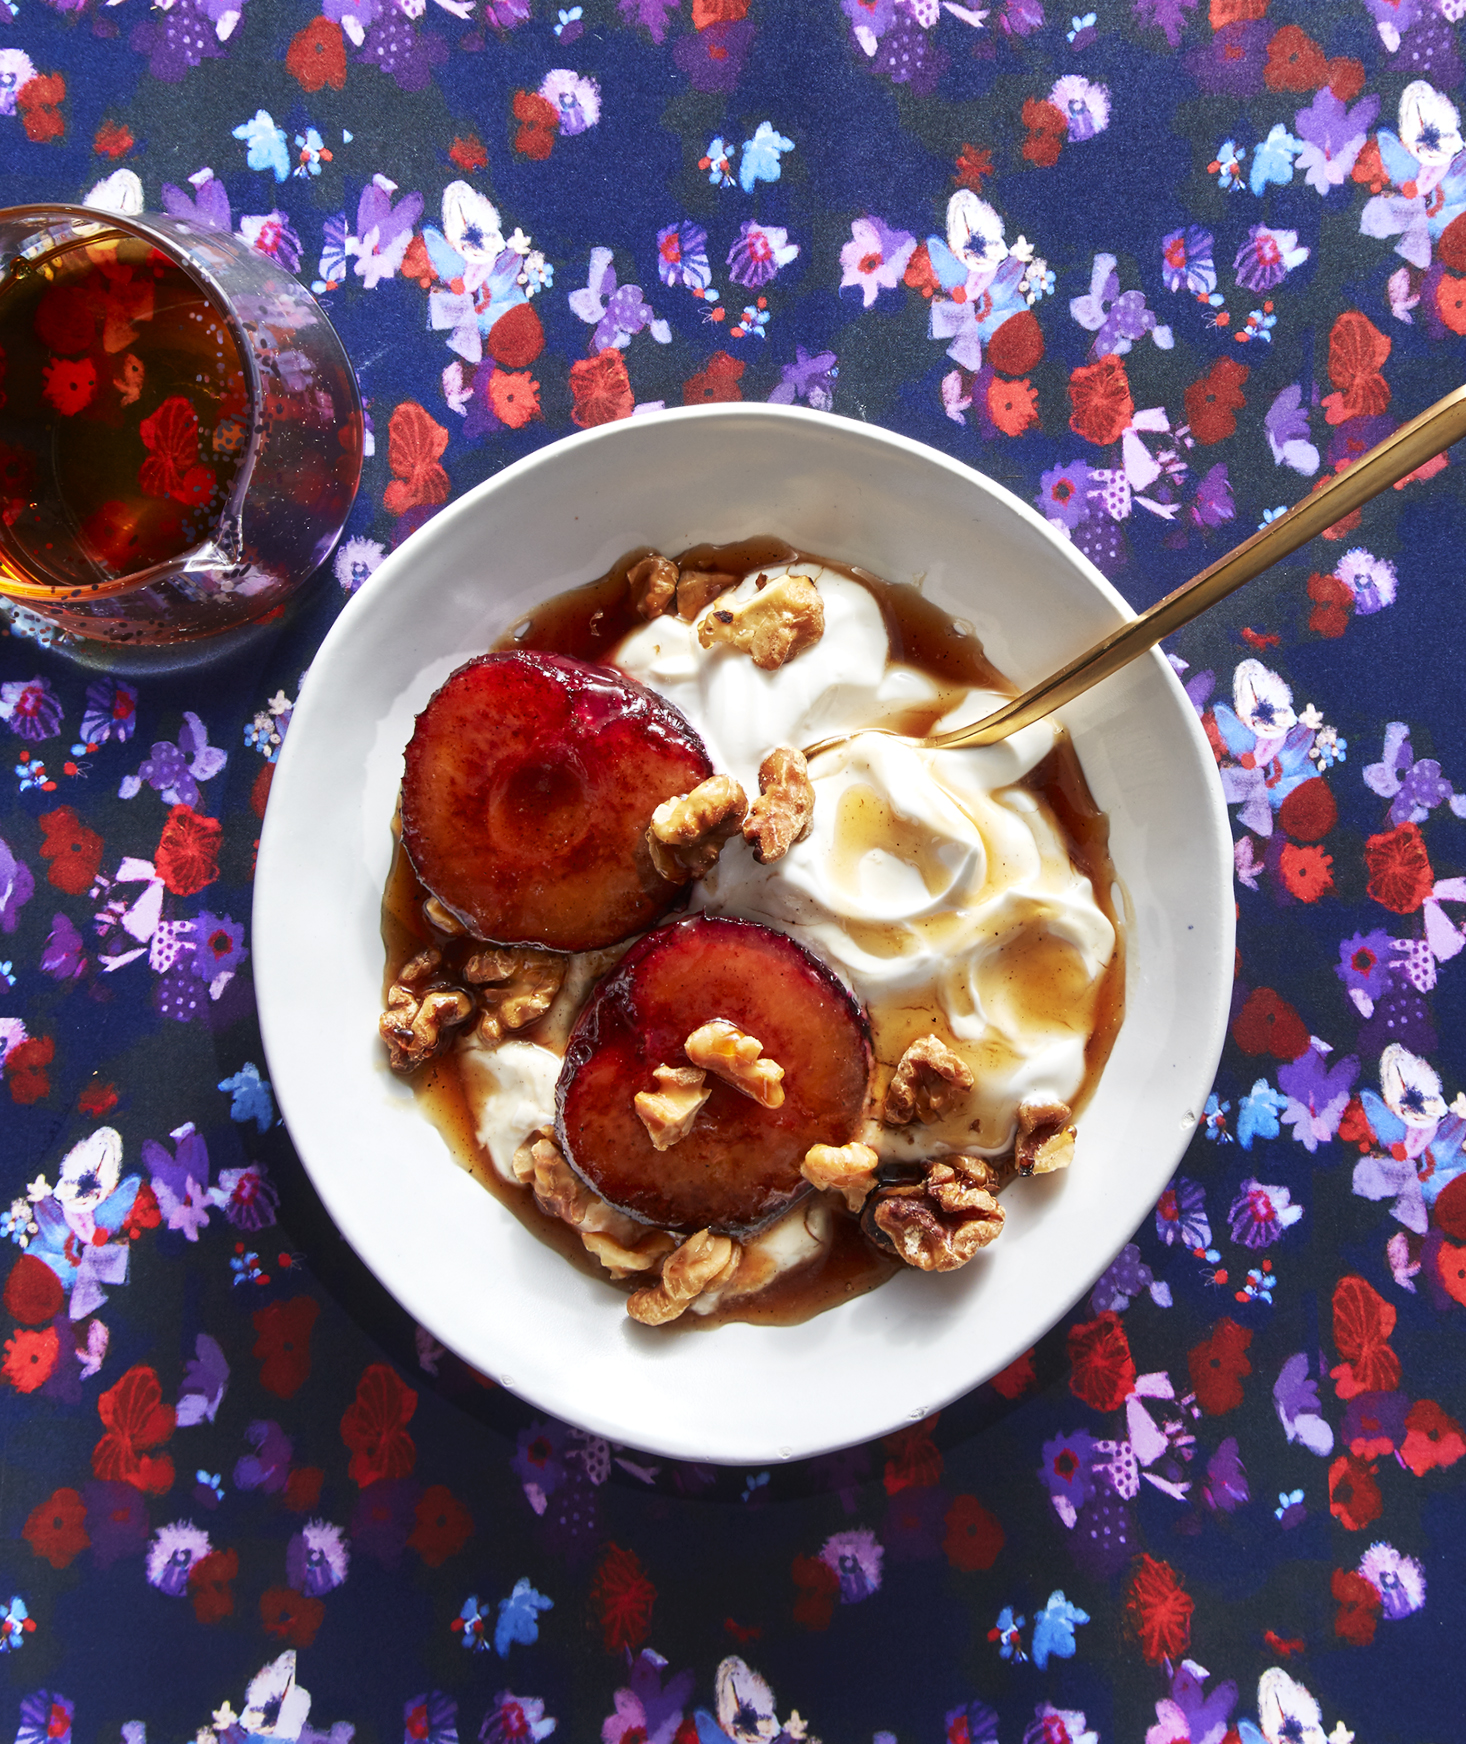 Roasted Plums With Yogurt and Walnuts